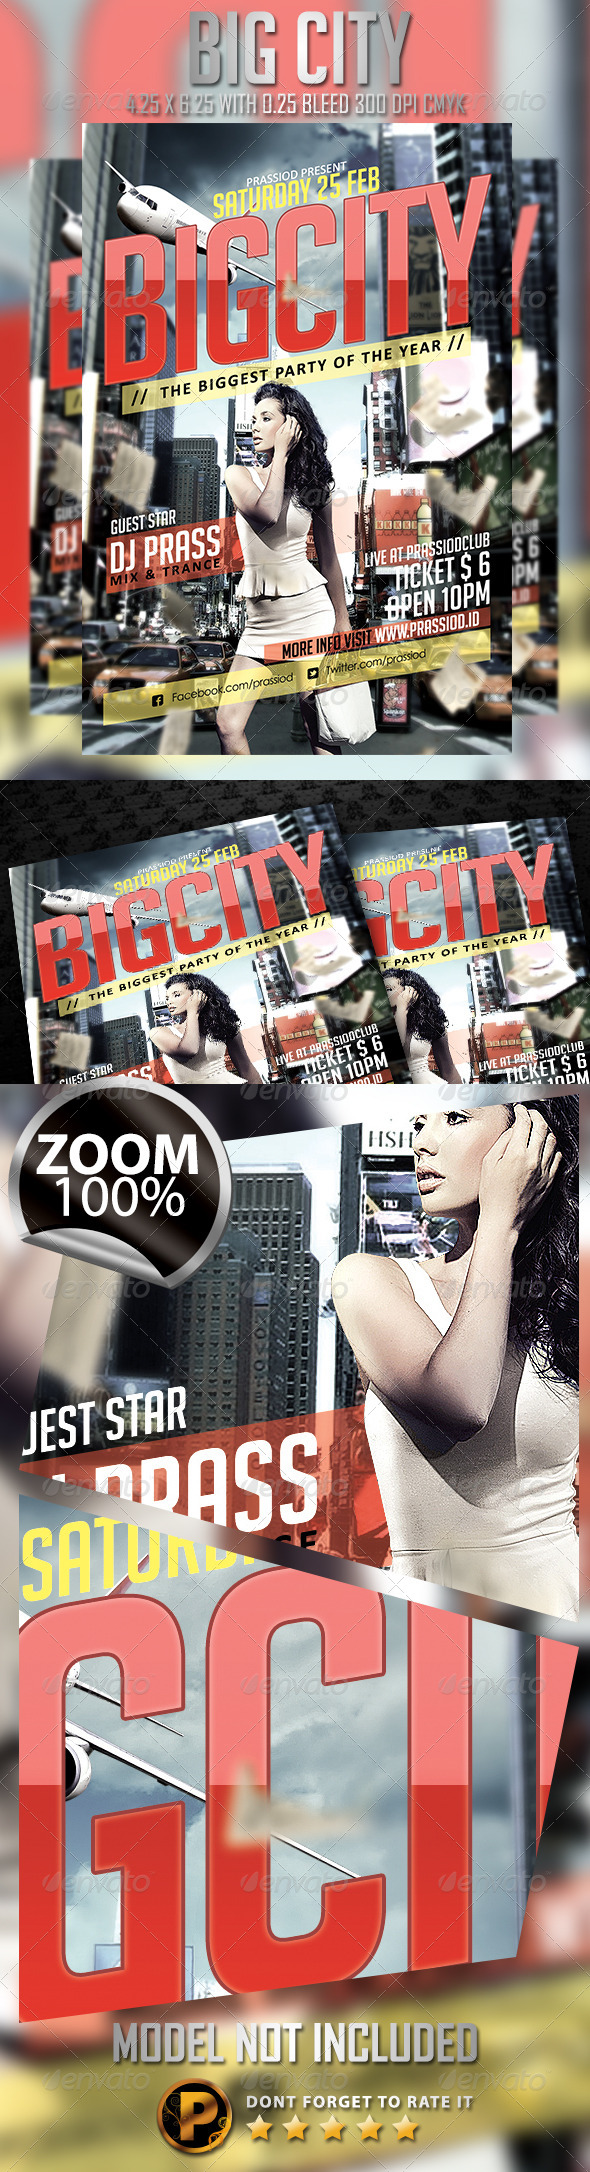 Big City Flyer Template - Clubs & Parties Events